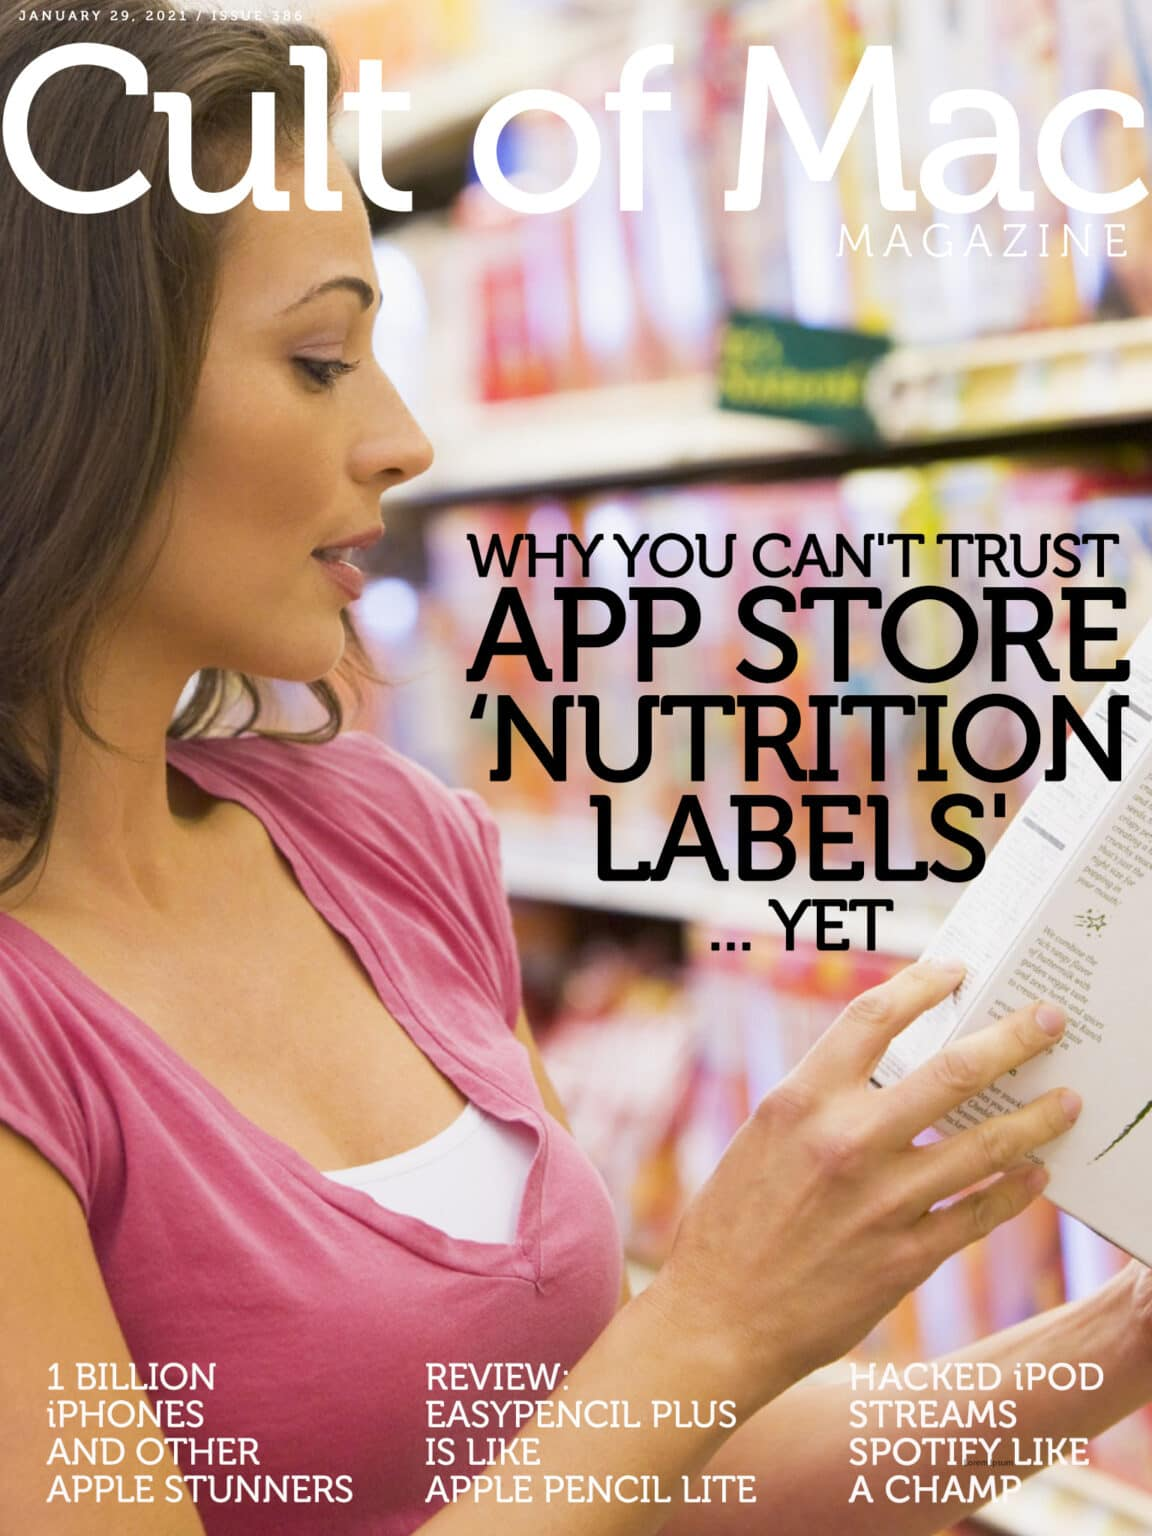 App Store nutrition labels: You can't trust everything you read.